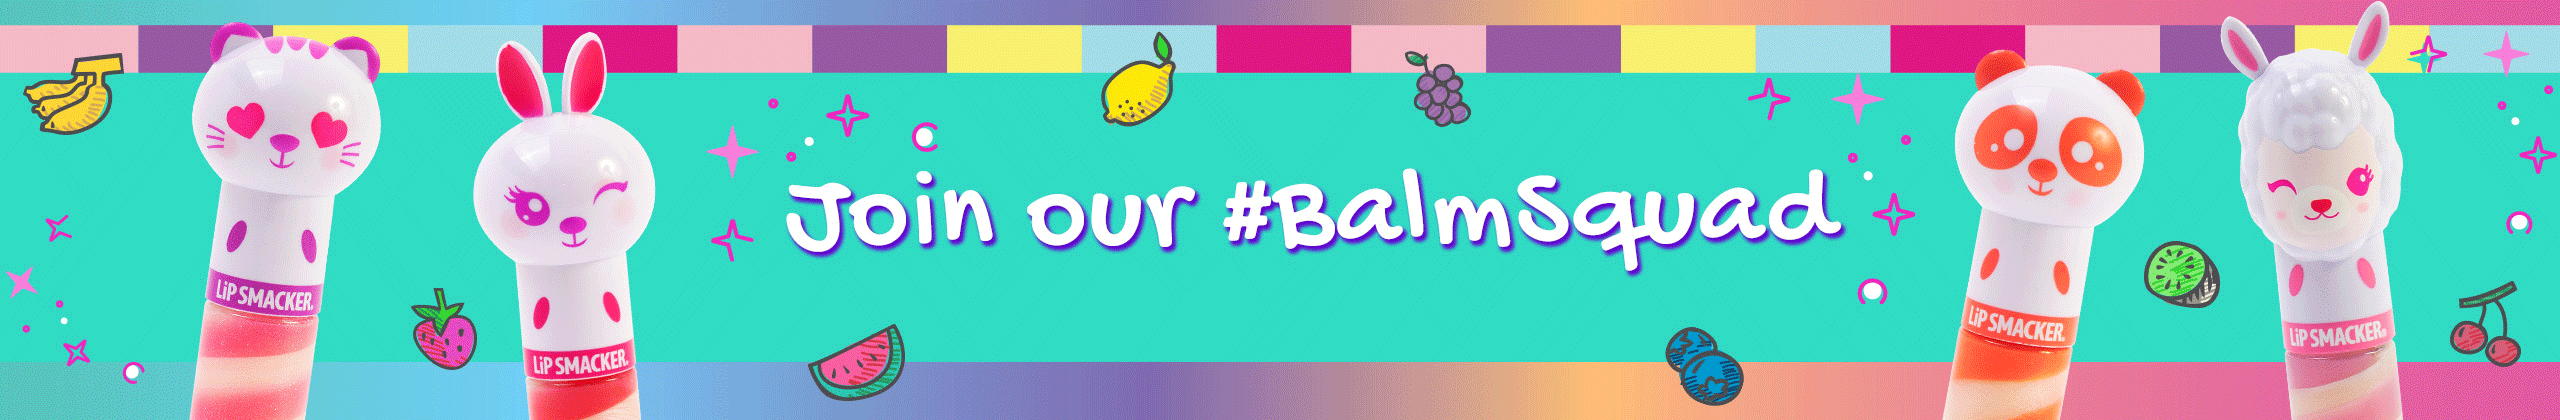 Lip Smacker | Join Our Balm Squad #balmsquad - products front facing on green background